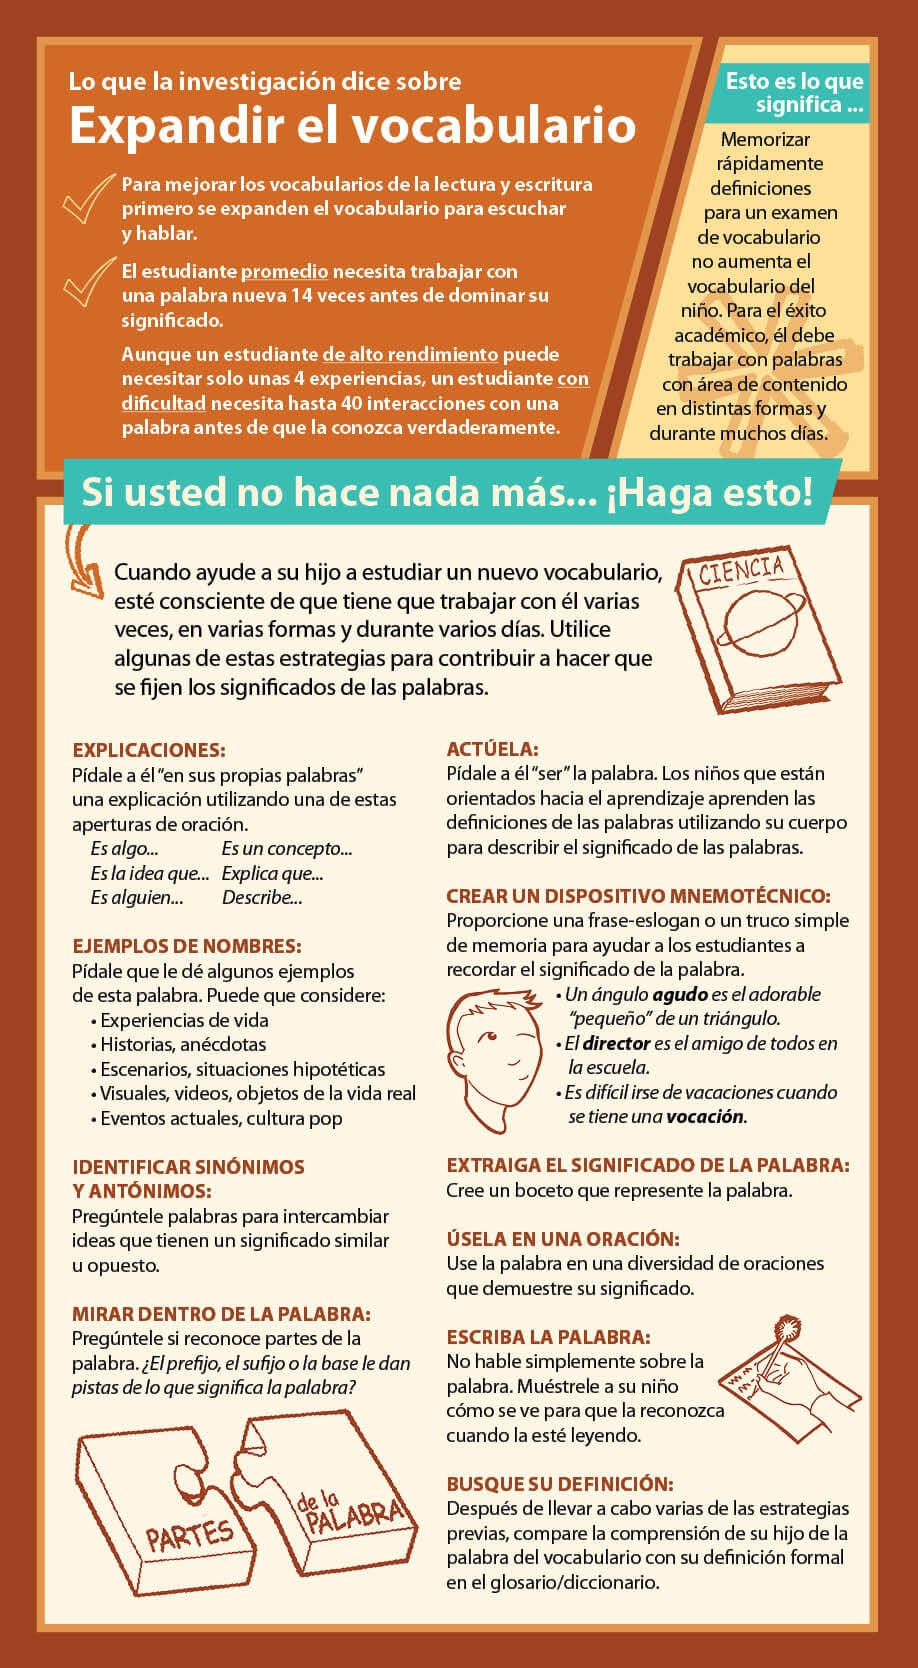 Expanding Vocabulary Parent Card by Smekens Education--Spanish version